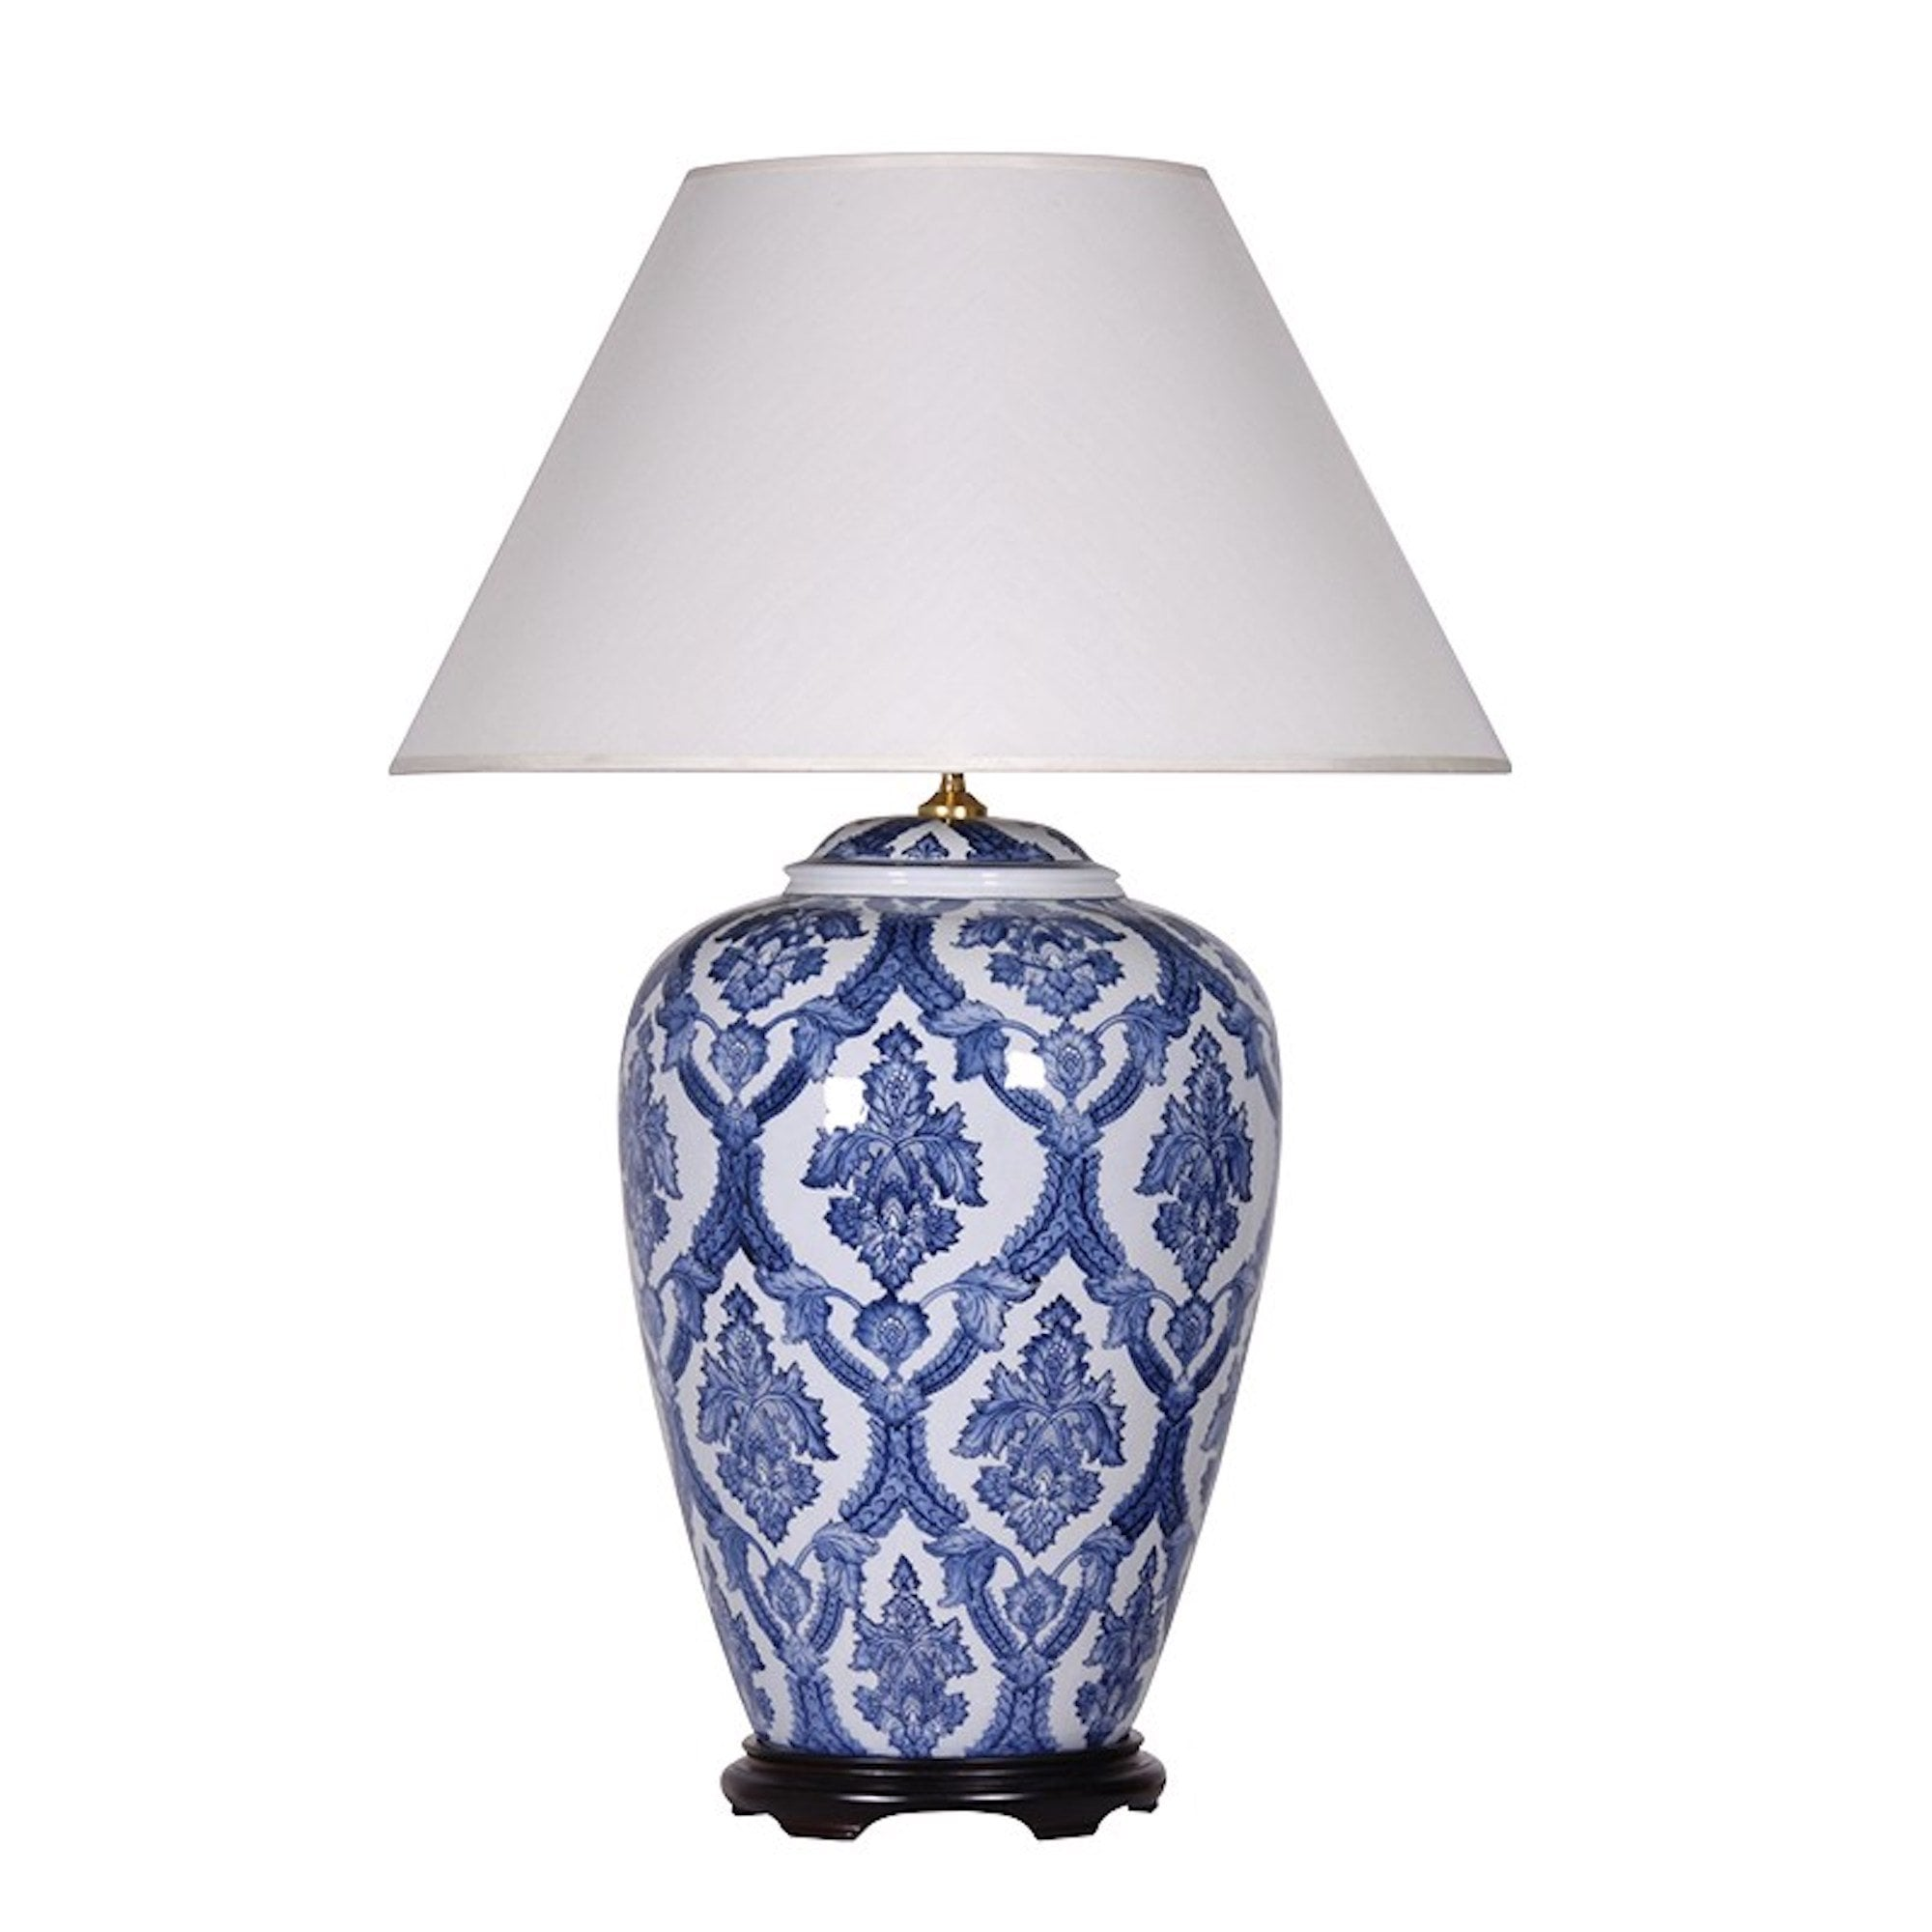 Blue White Ceramic Chinoiserie Table Lamp Bed Bath Home Travel From The Luxe Company Uk